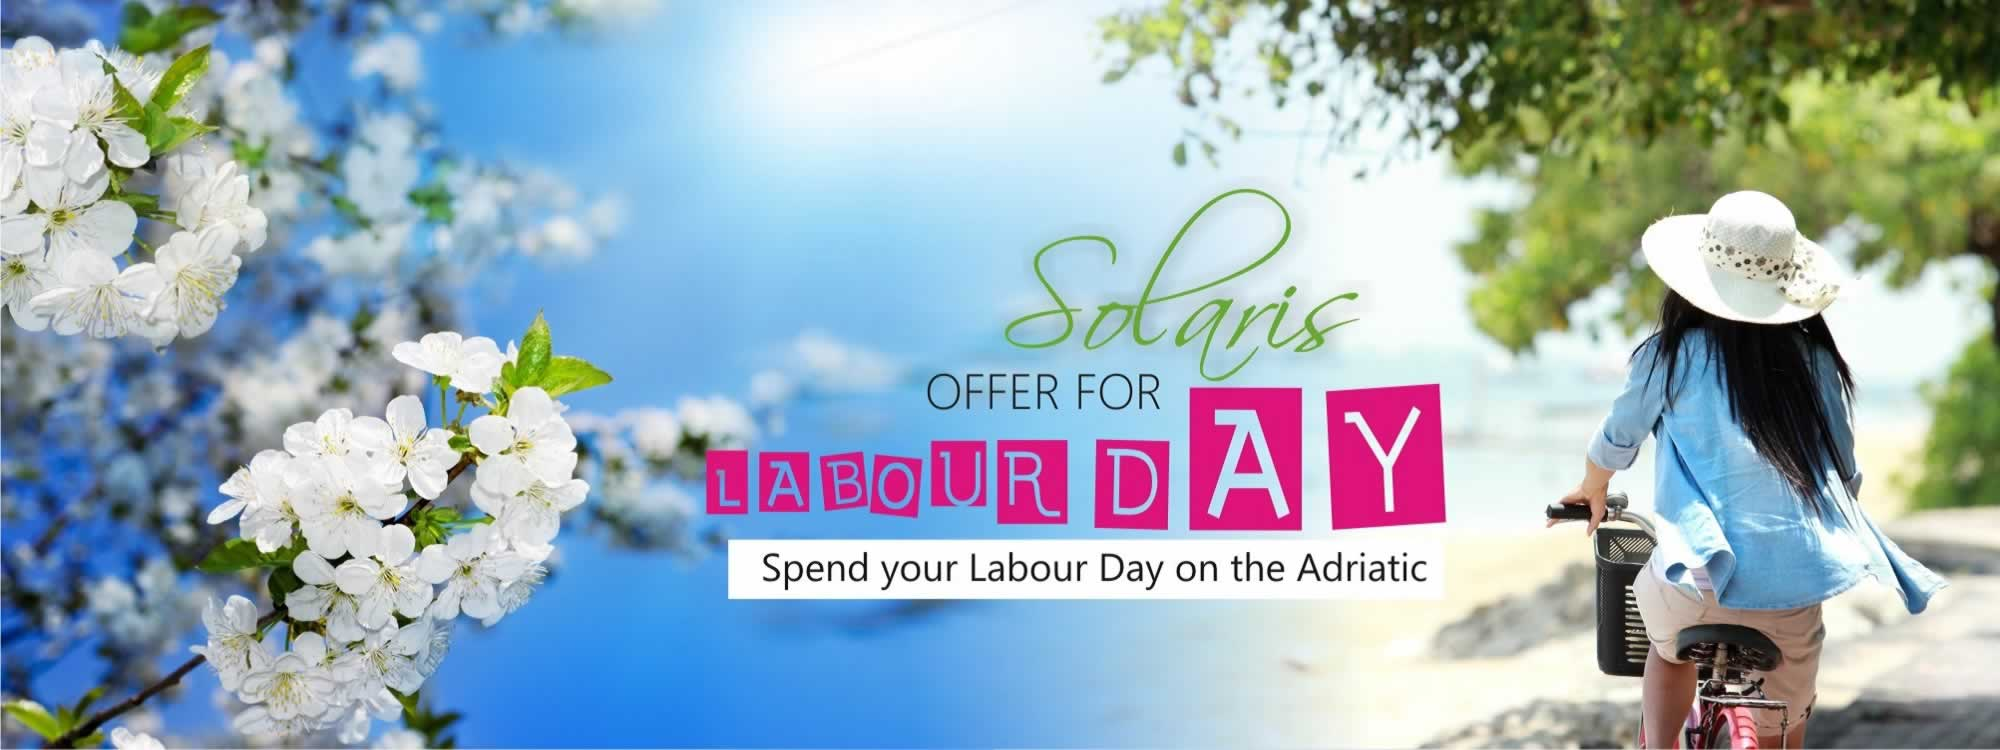 Solaris_offer_for_labour_day_on_the_adriatic_vacation_dalmatia2